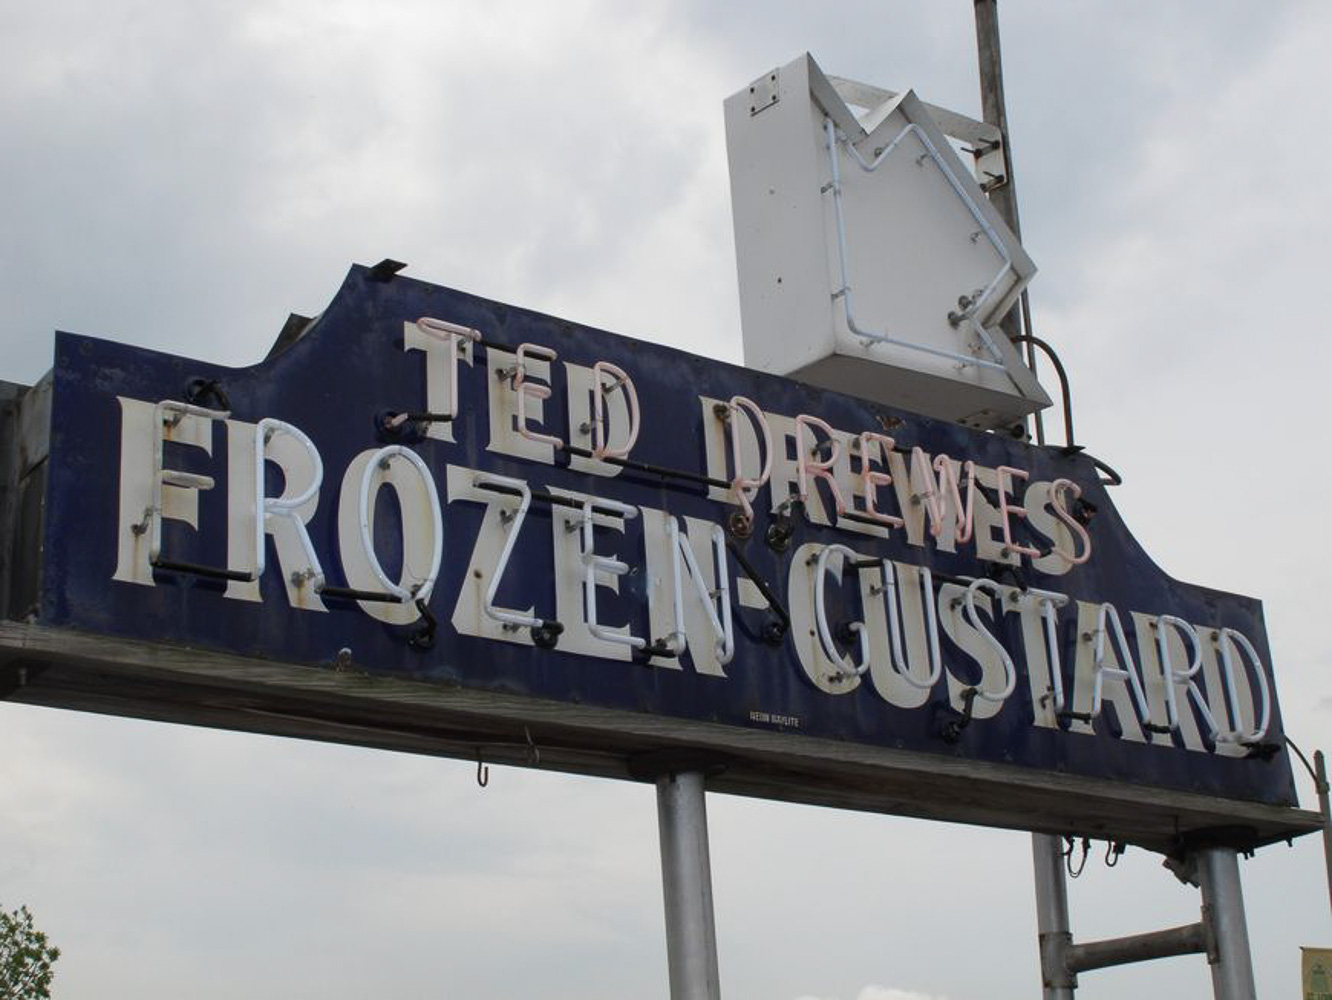 Driving Route 66, Ted Drewes custard stand